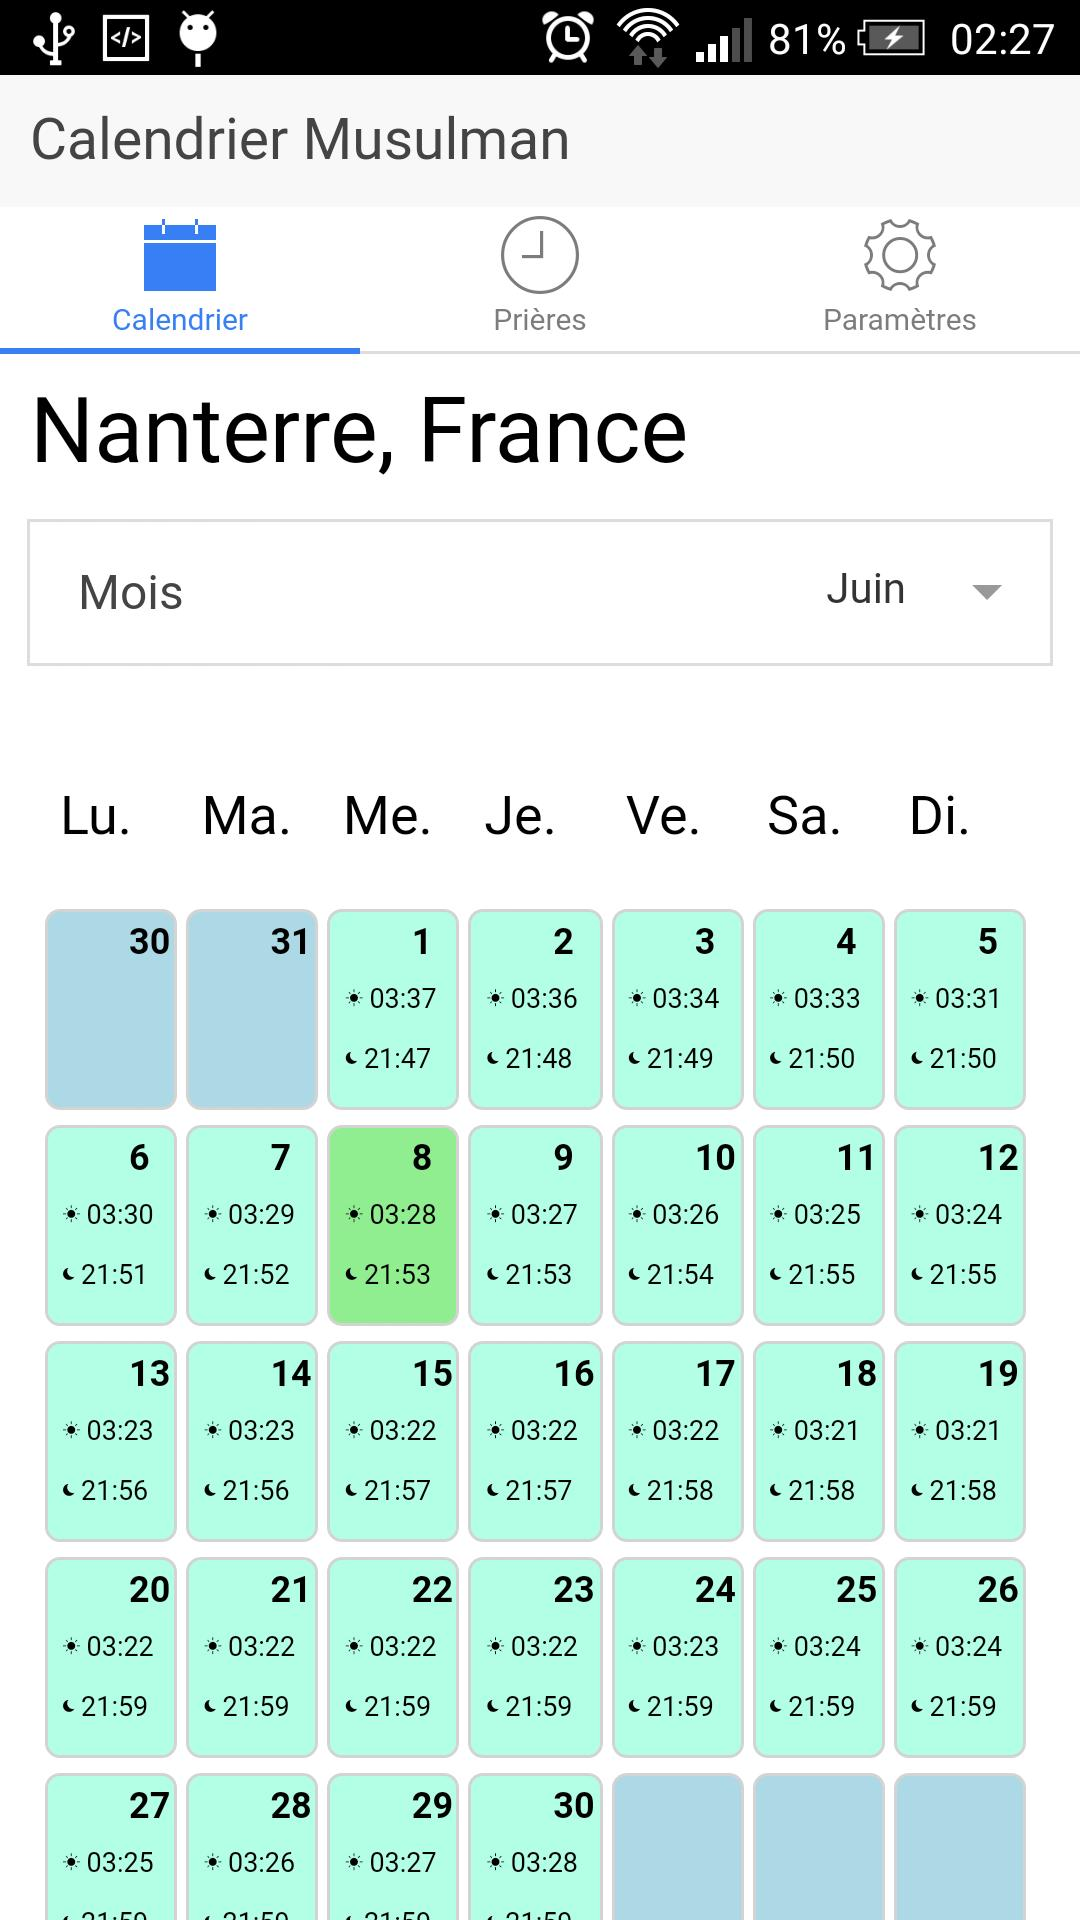 Calendrier Musulmans.Calendrier Musulman For Android Apk Download